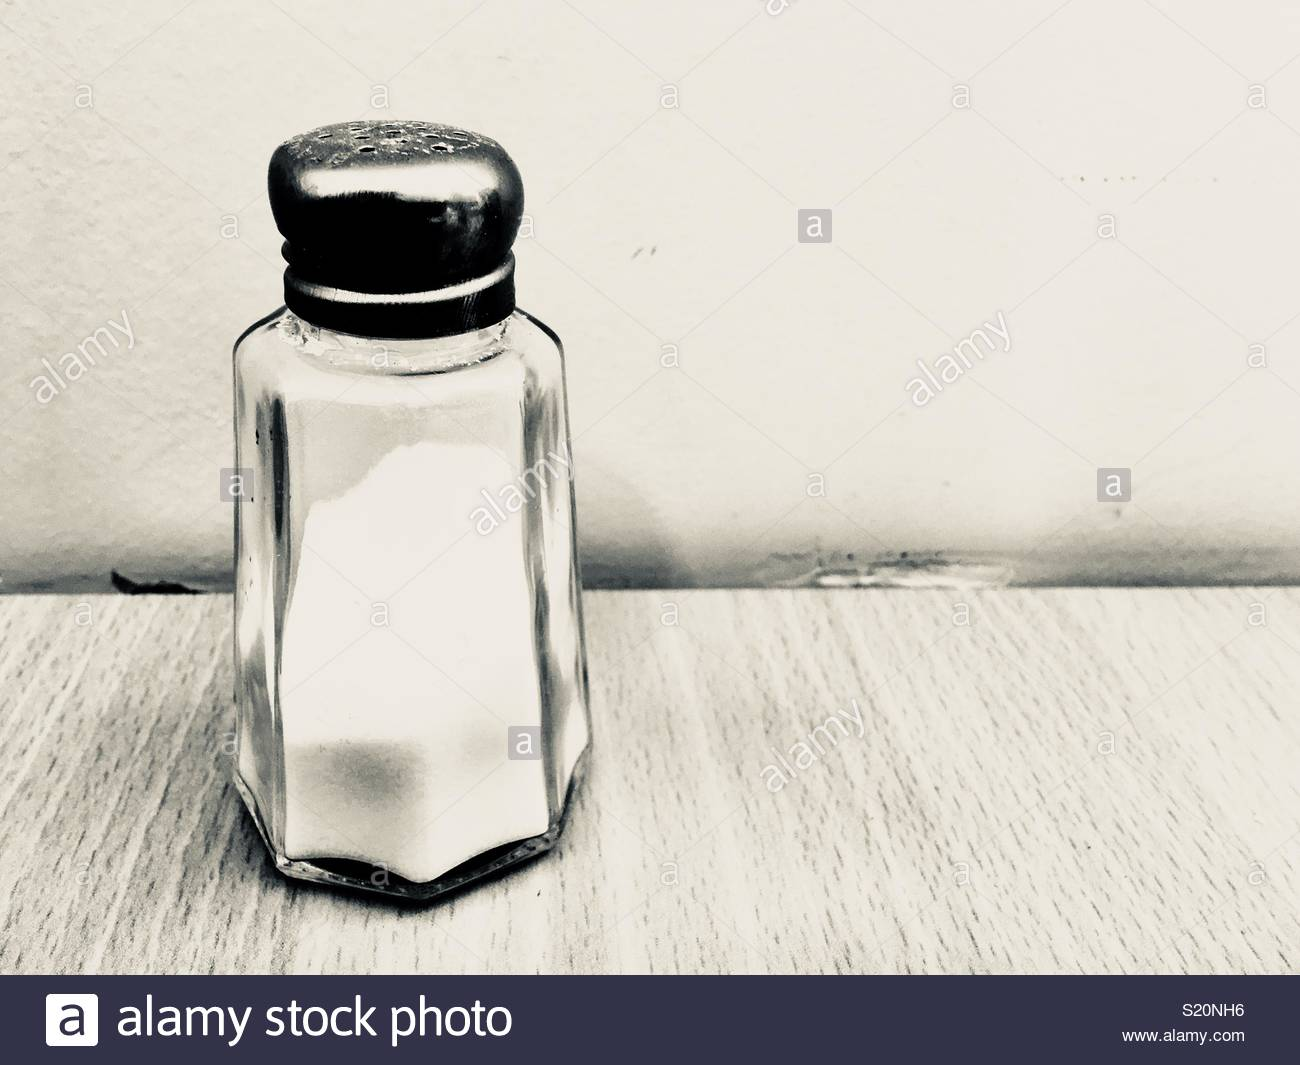 Salt cellar with copy space provided - Stock Image